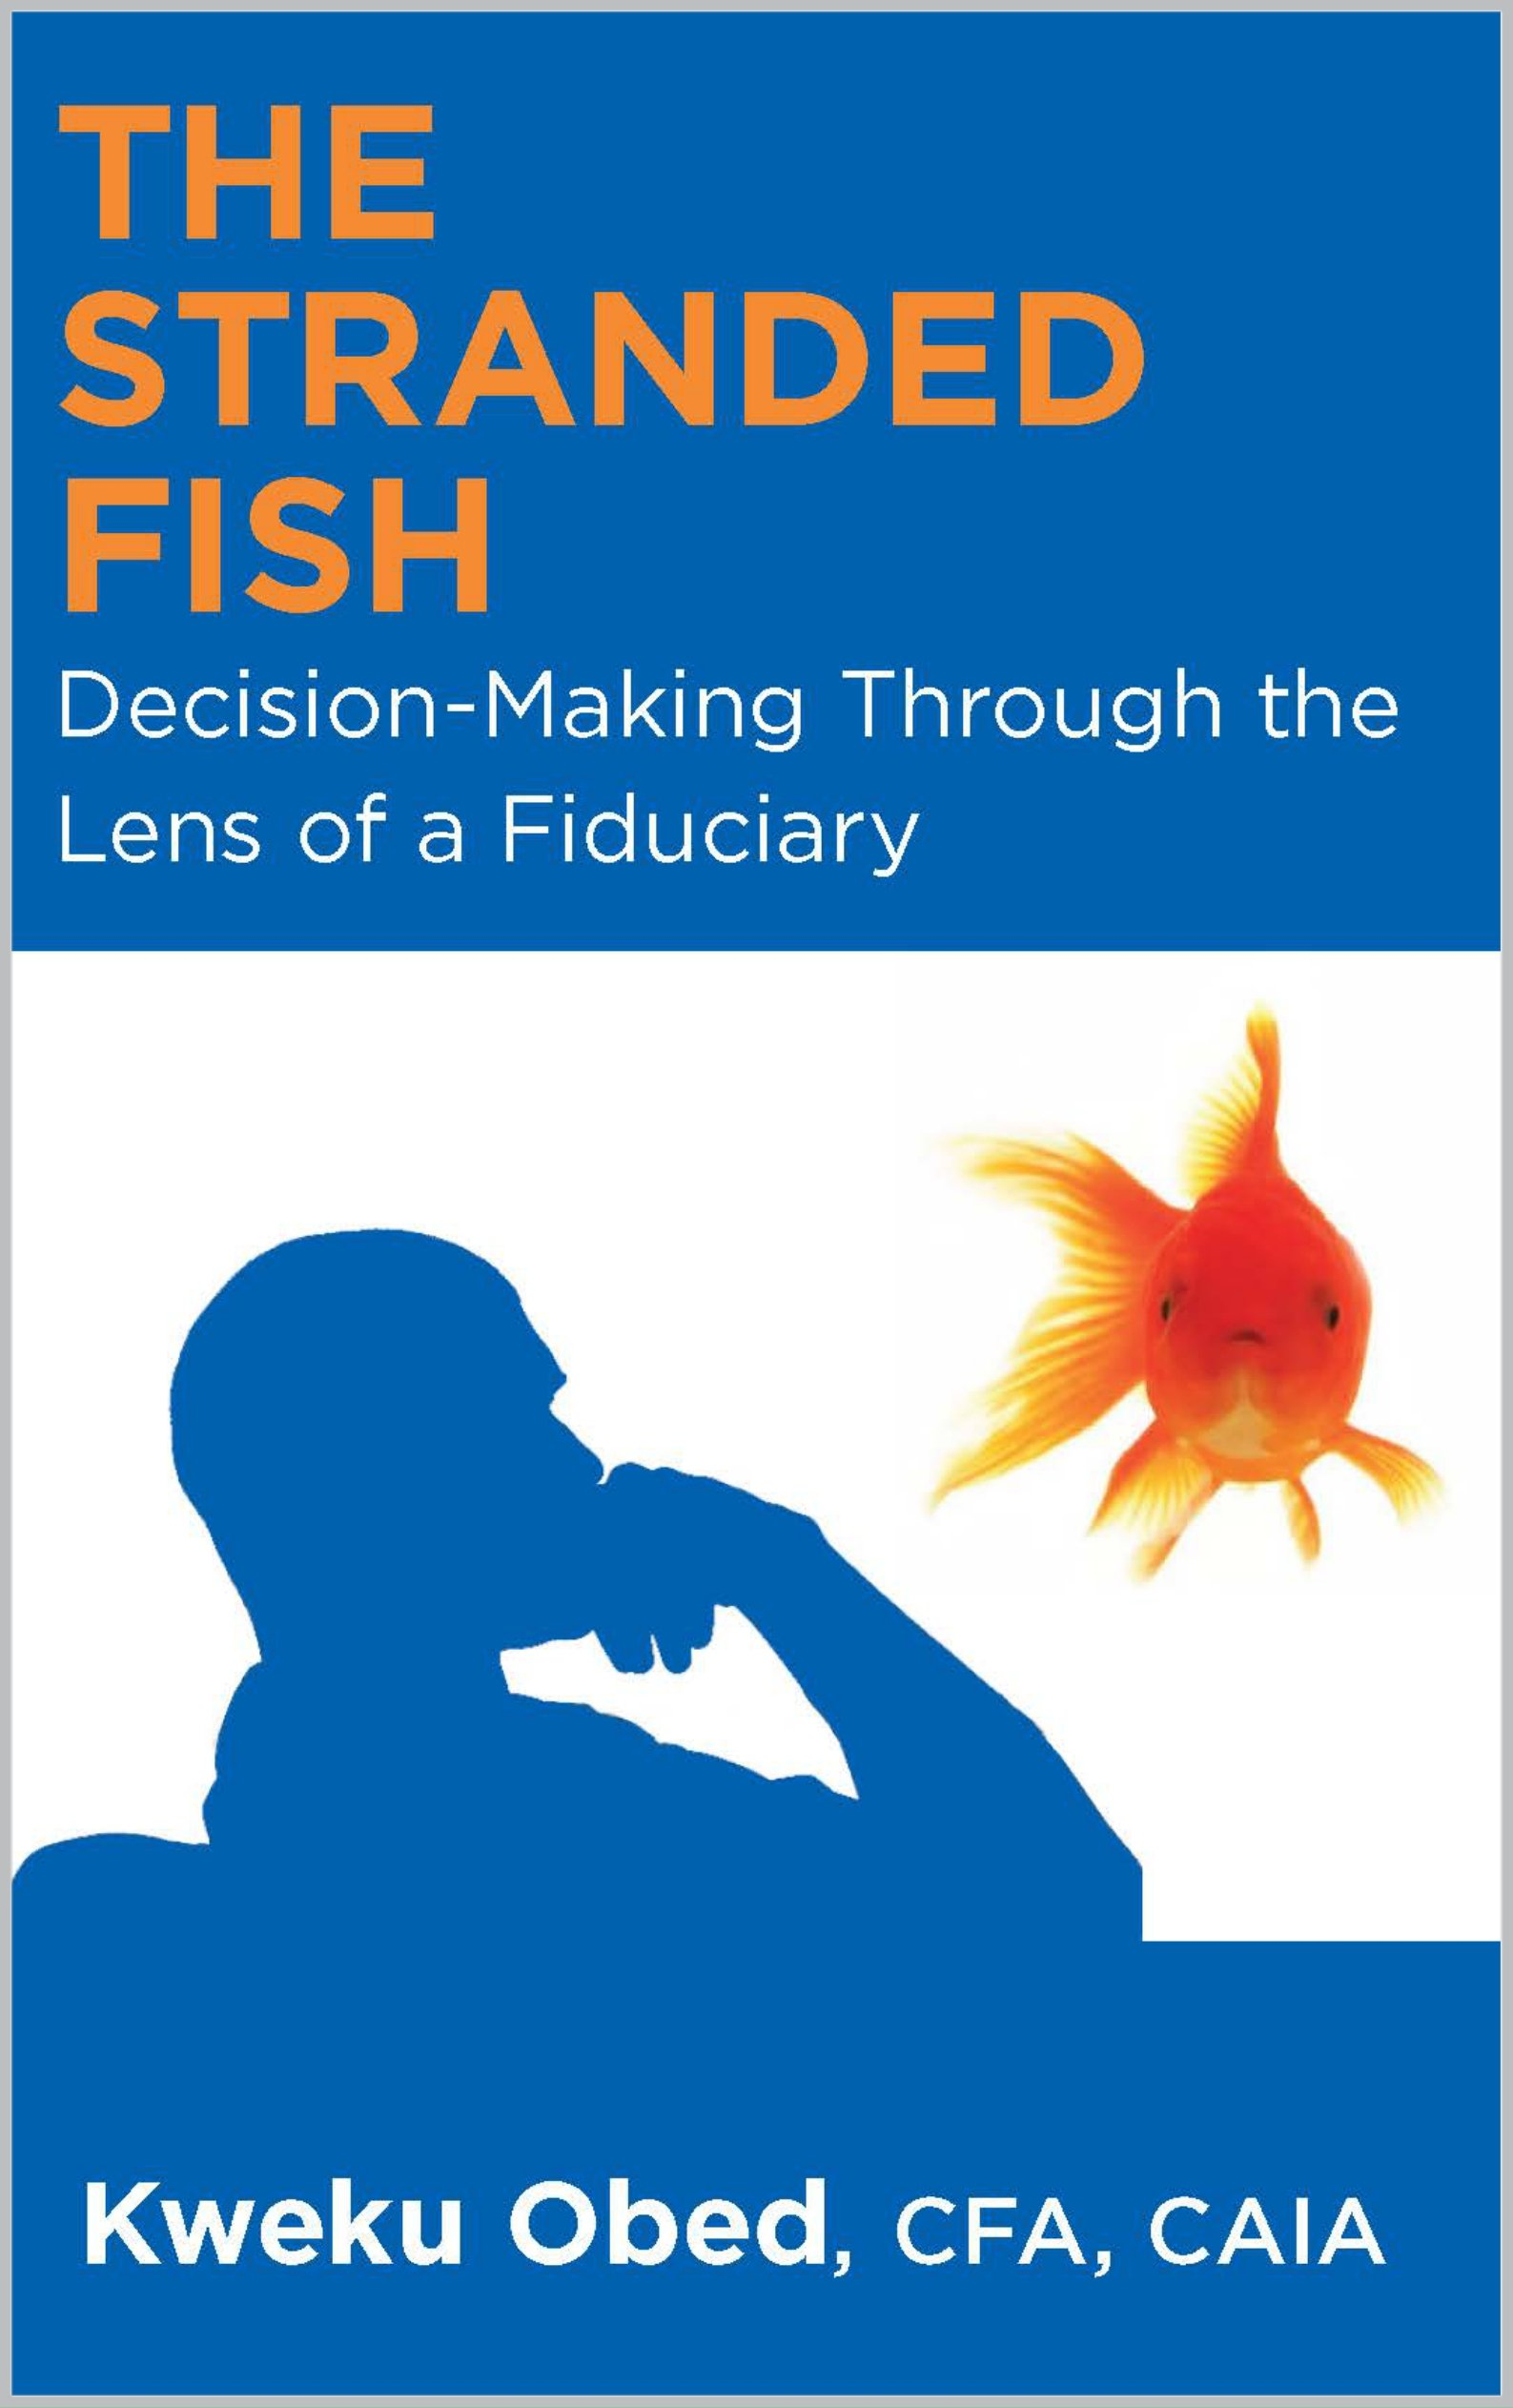 The Stranded Fish: Decision-Making Through the Lens of a Fiduciary